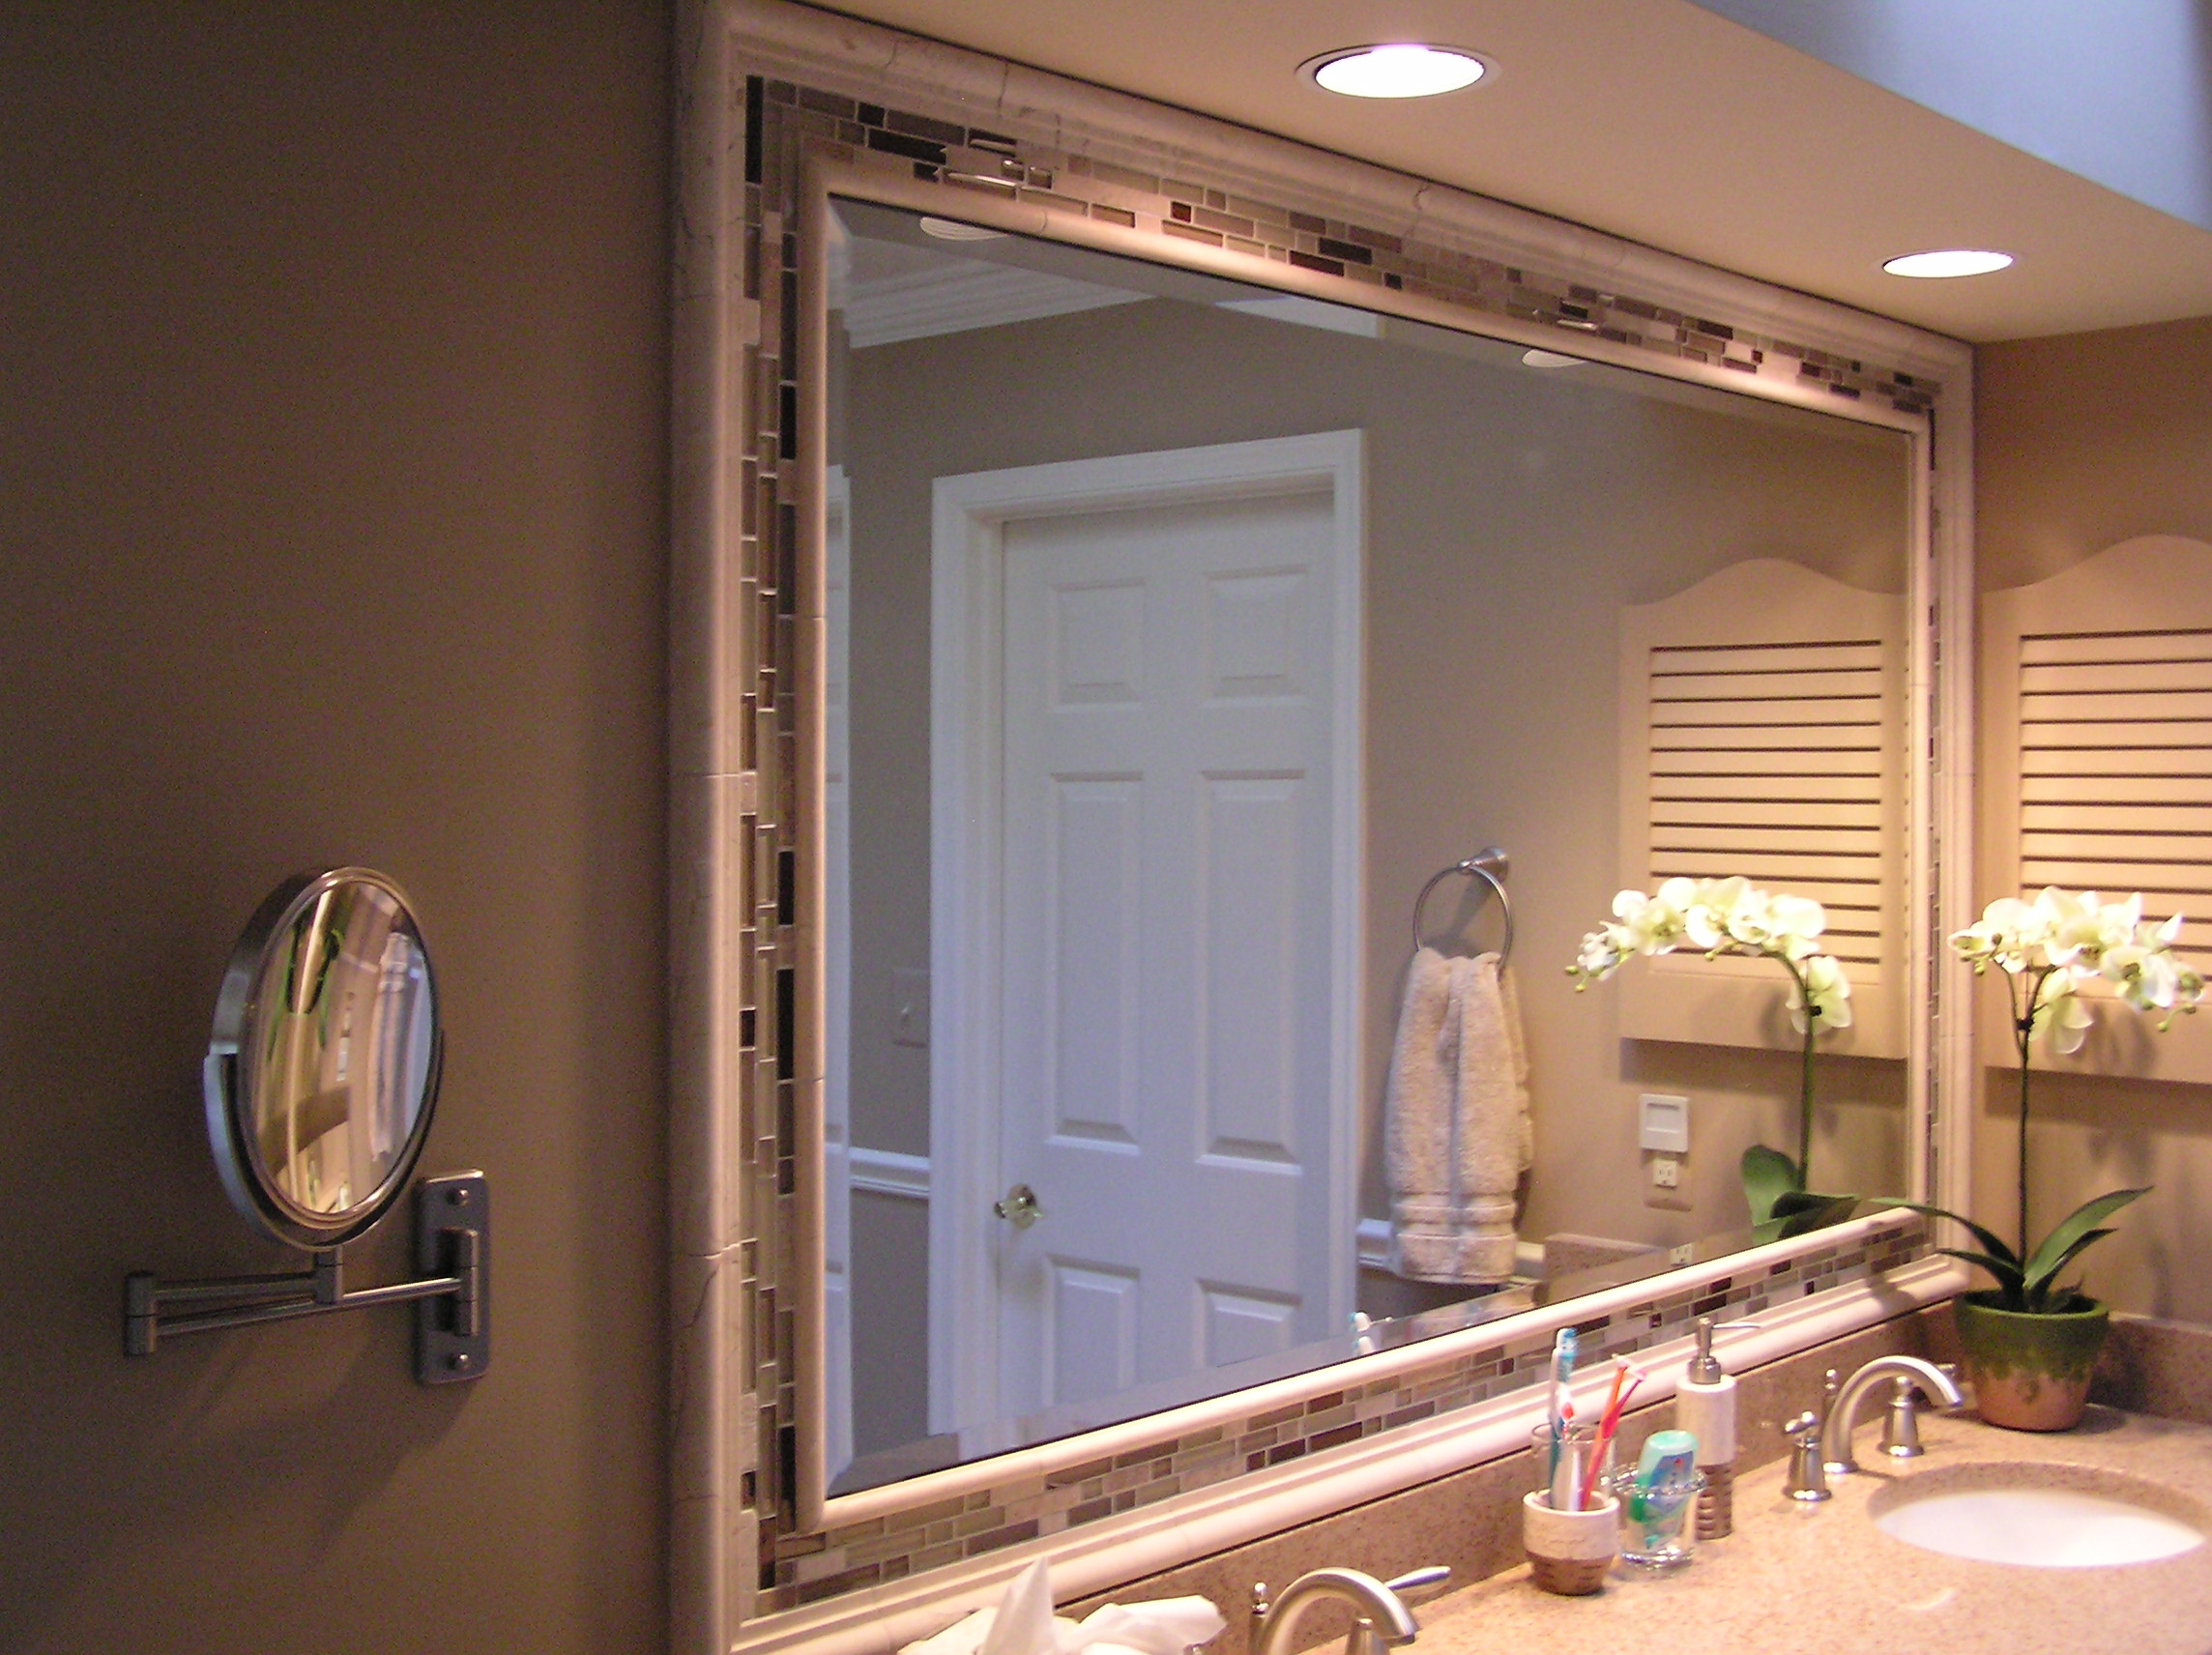 Bathroom vanity mirror ideas large and beautiful photos for Bathroom mirror ideas